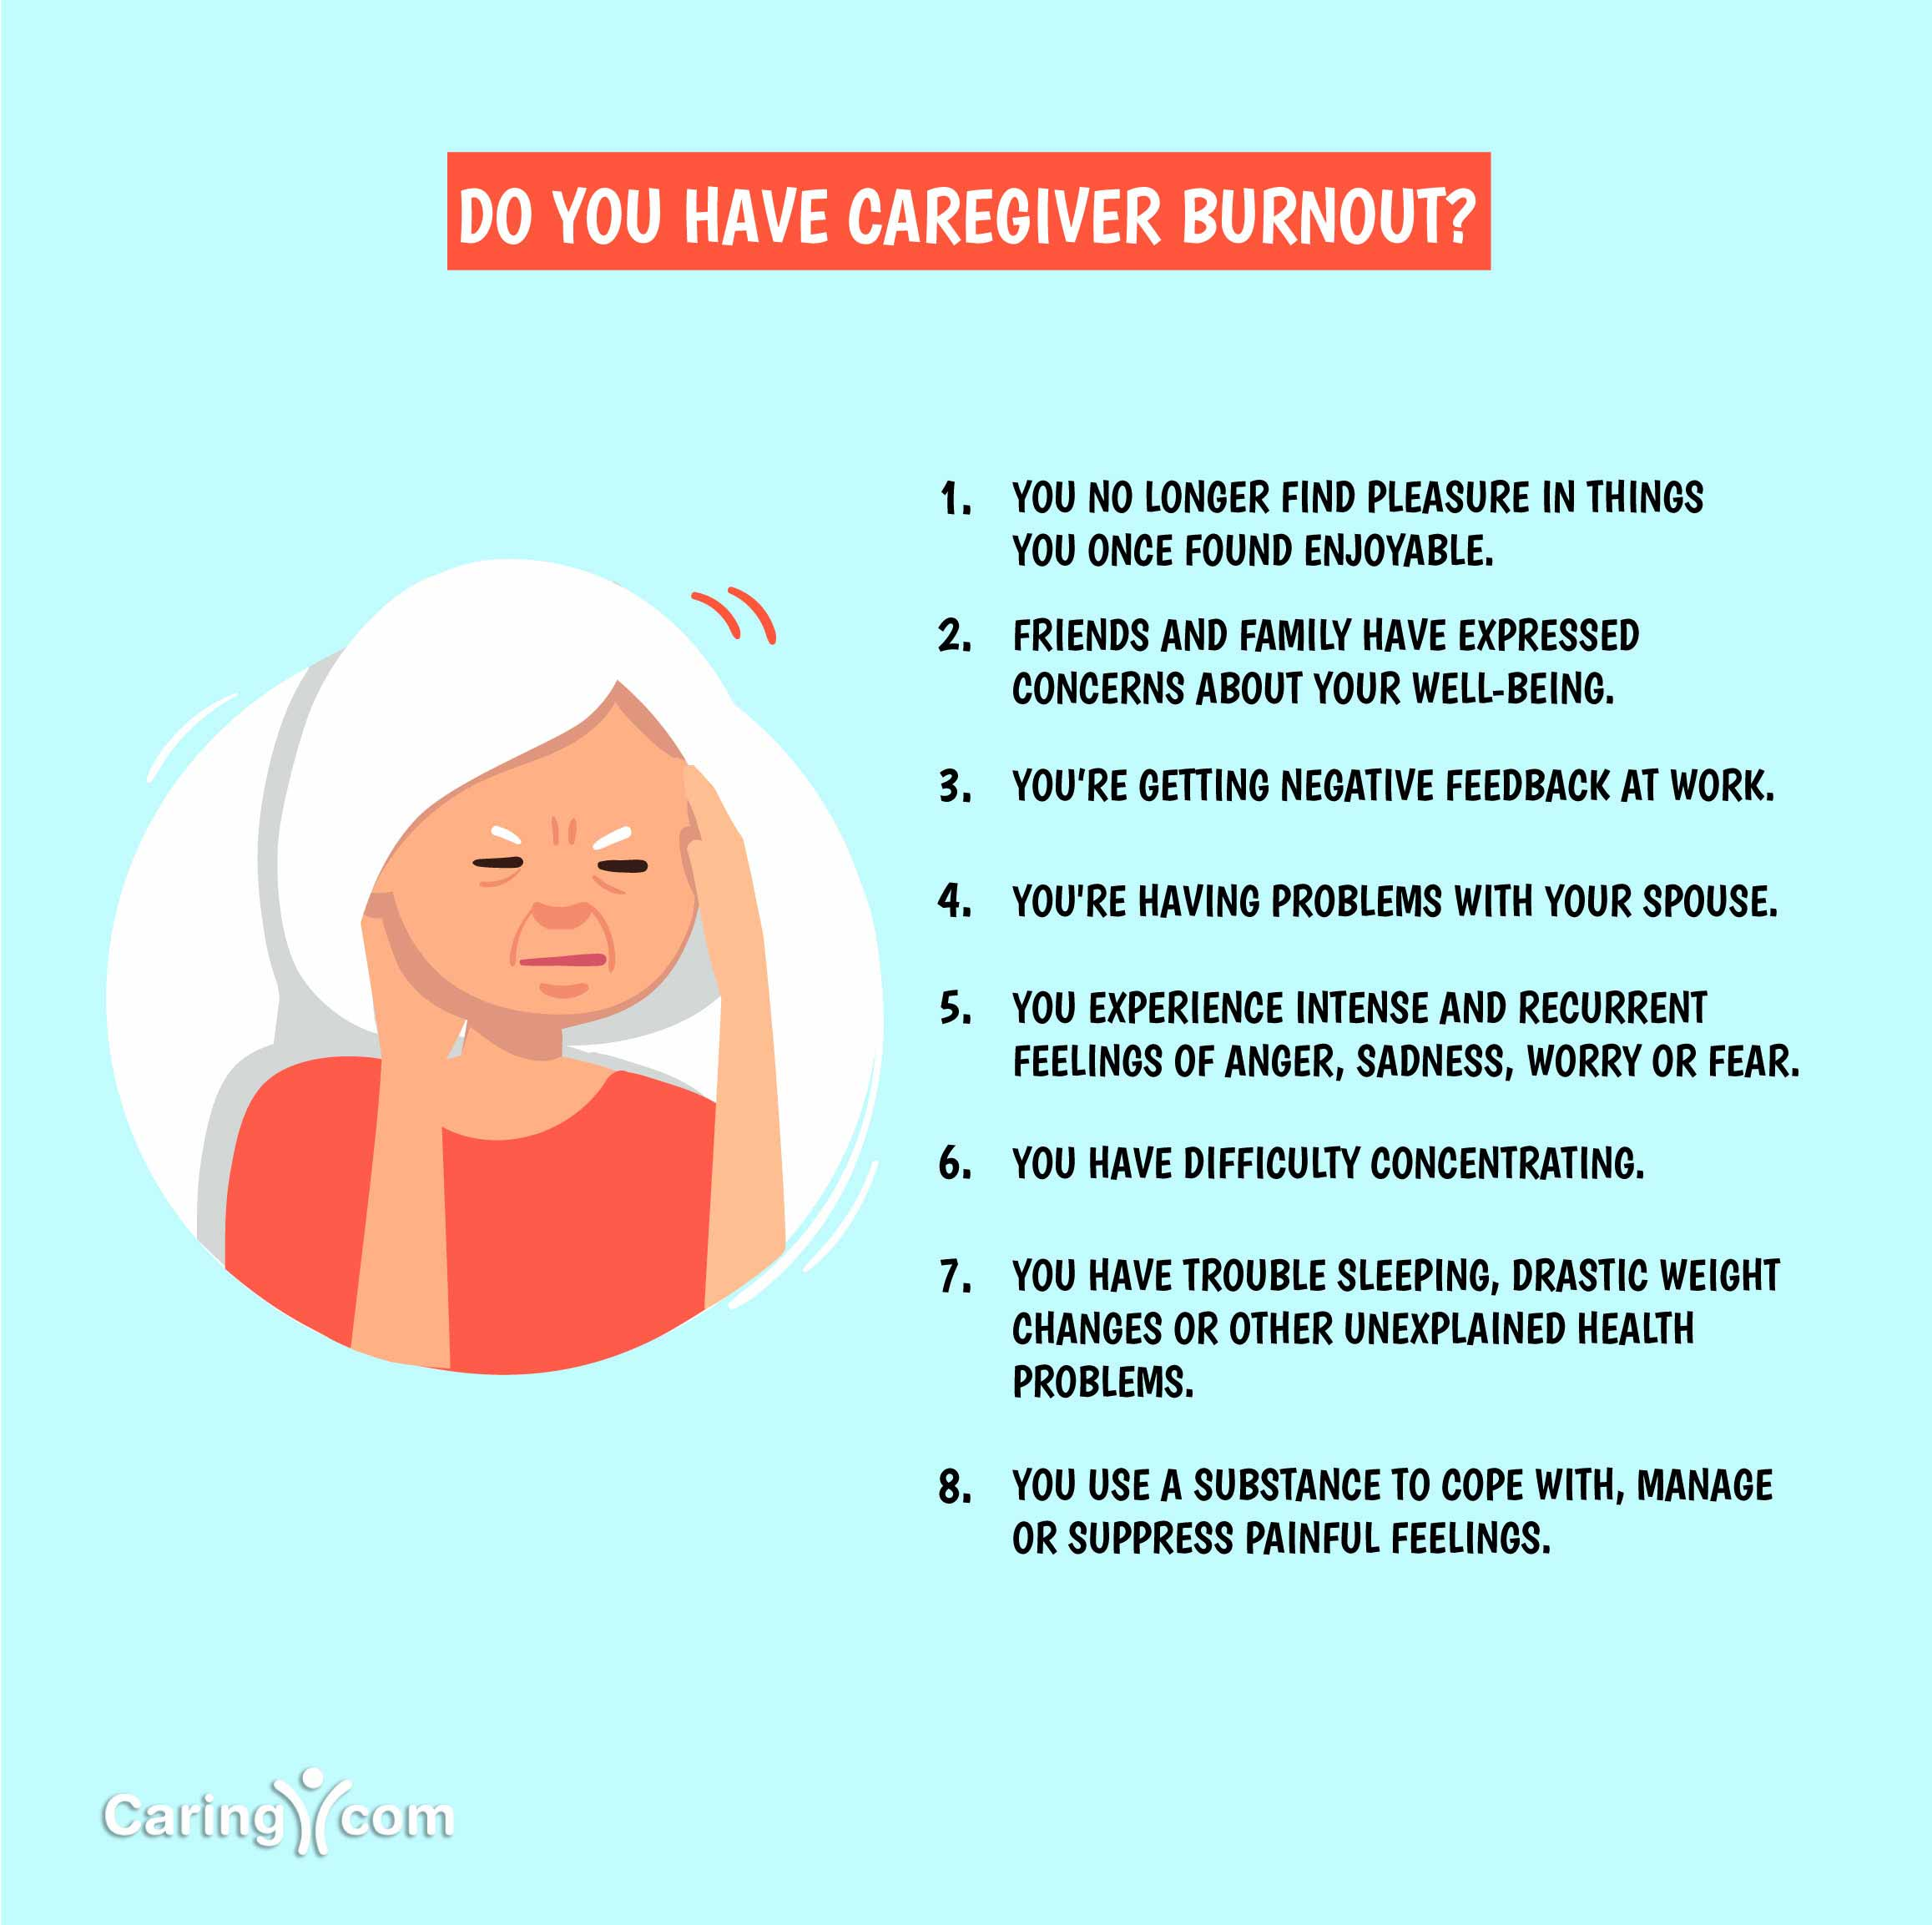 Self-Care Tips to Ease Caregiver Burnout